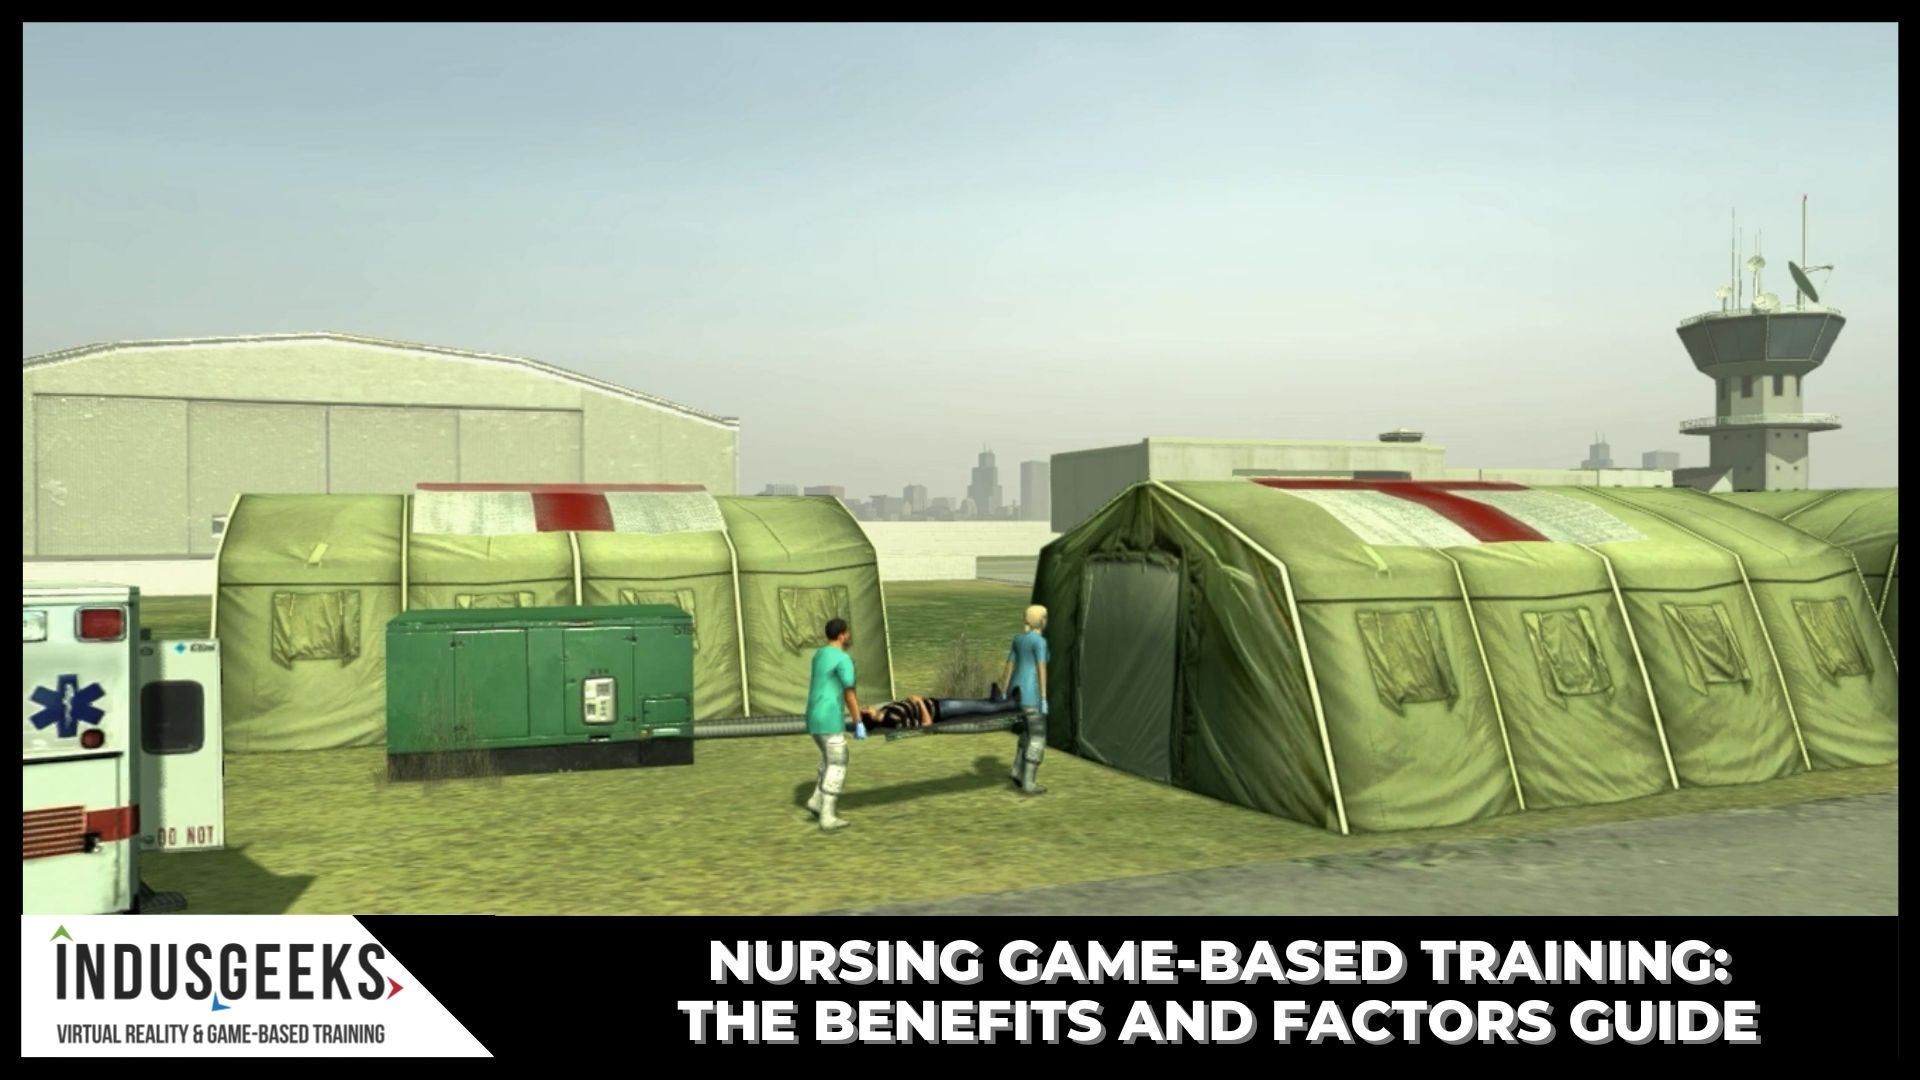 Nursing Game-based training The benefits and factors guide